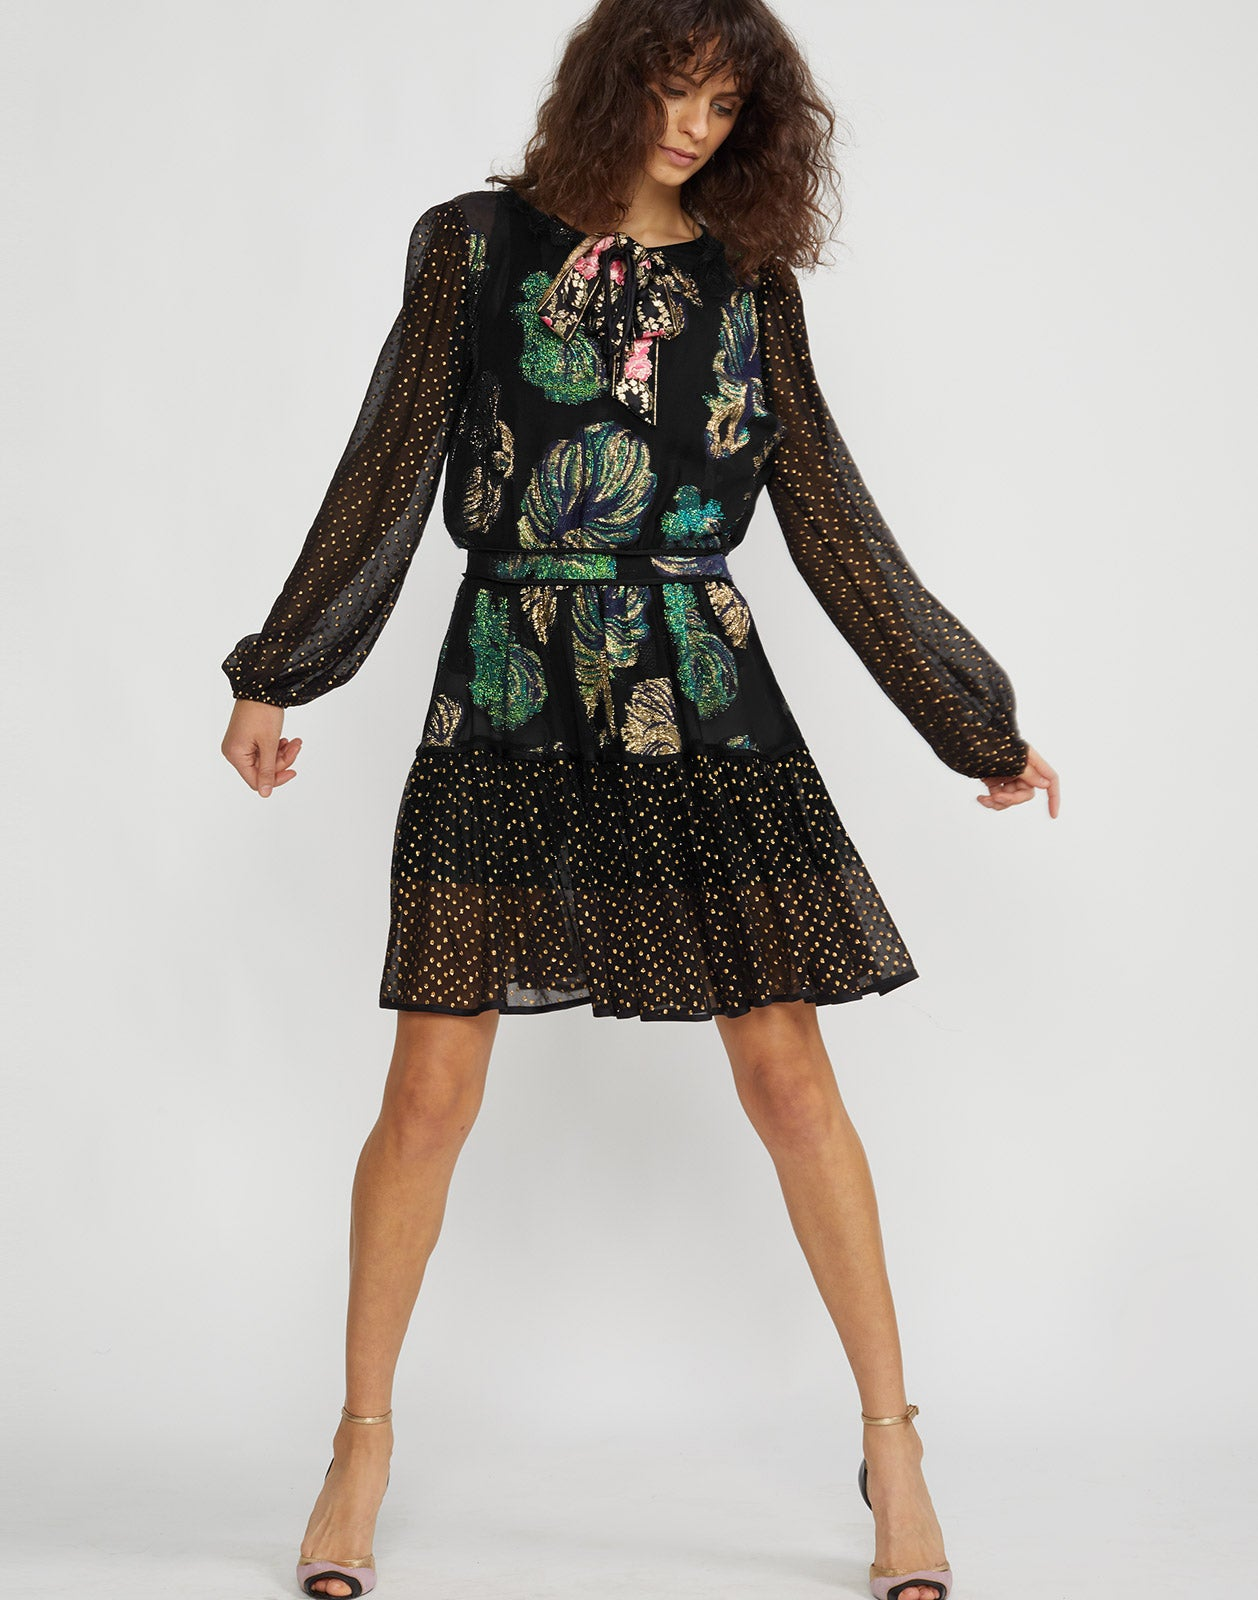 Front view of model wearing Inverness Mixed Metallic Fish Dress.